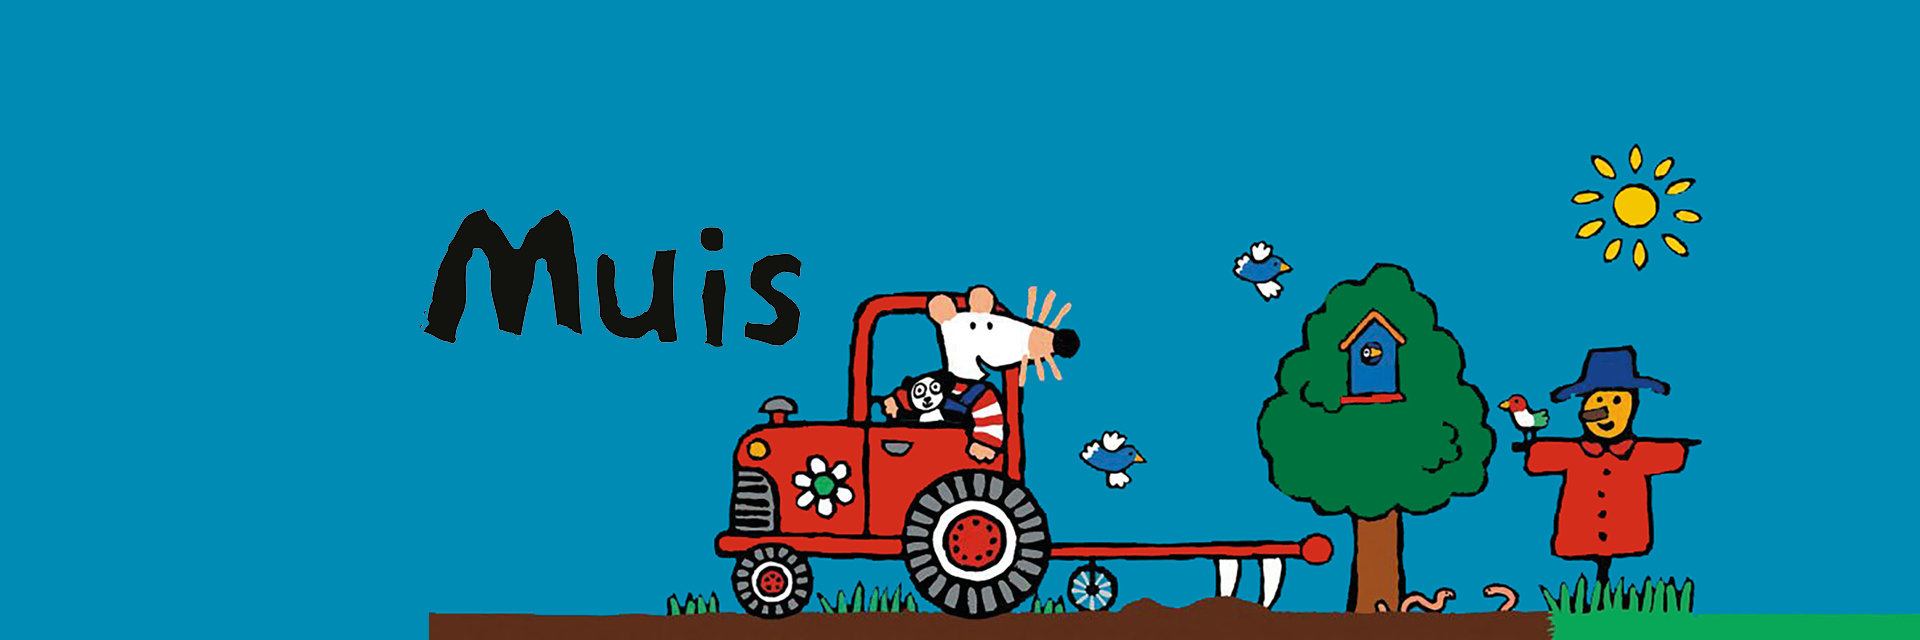 Muis - Lucy Cousins